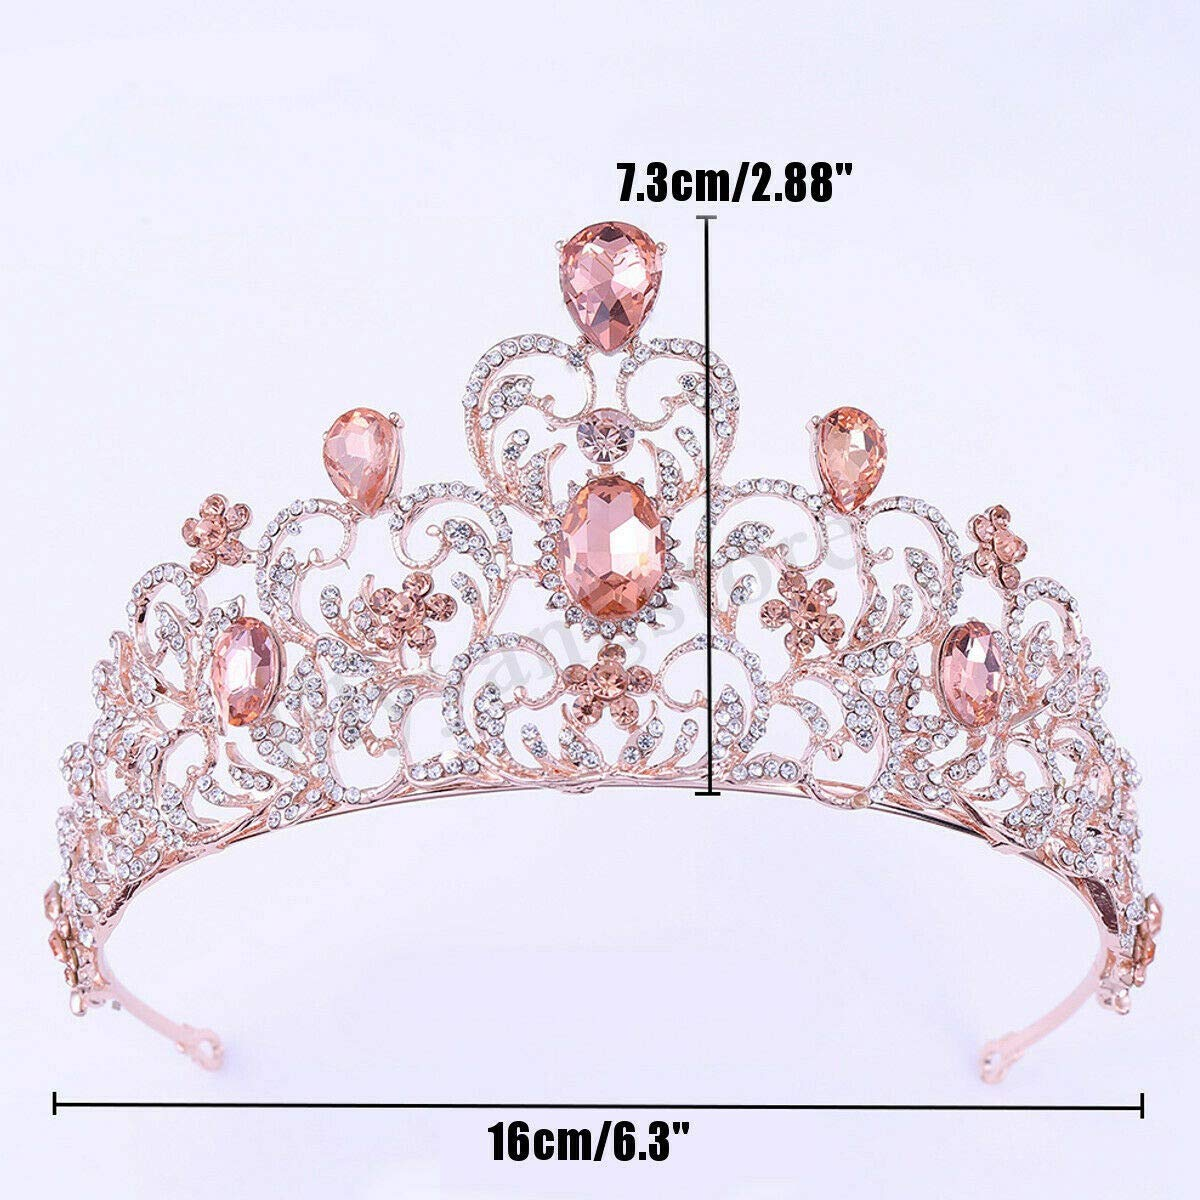 CUHAWUDBA 7.3Cm High Pink Rose Gold Heart Crystal Tiara Wedding Party Prom Pageant